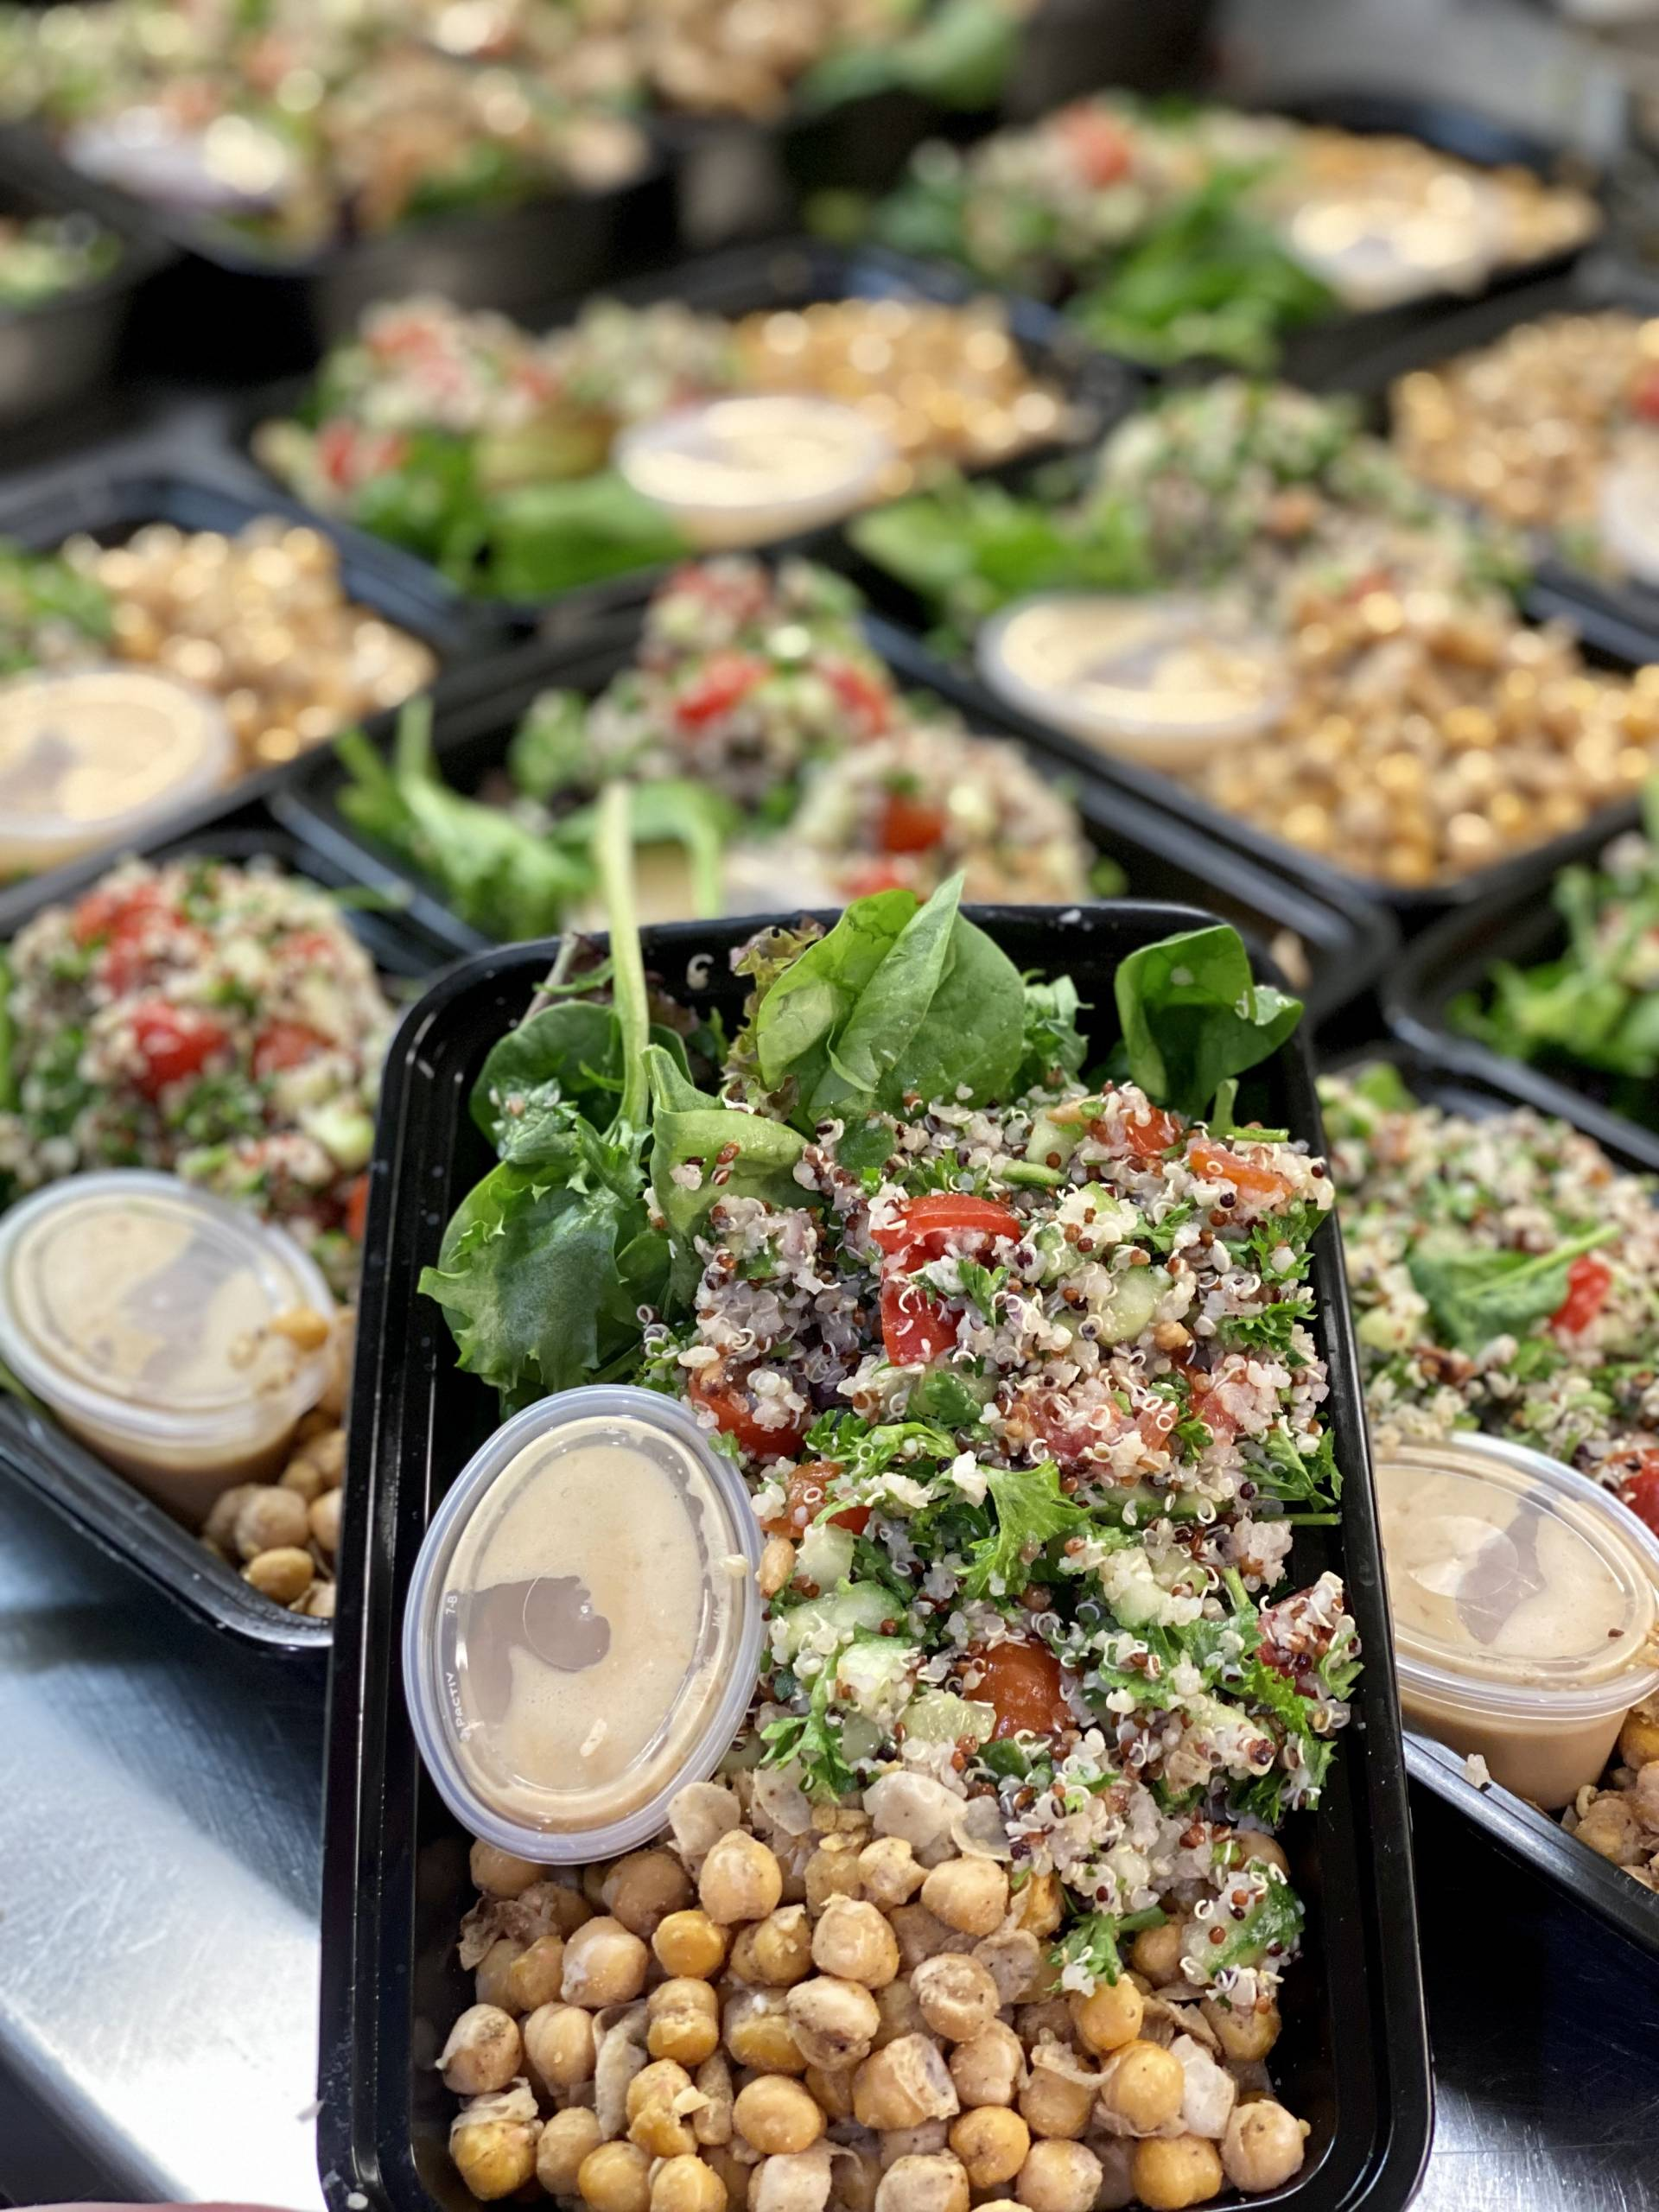 Quinoa Tabbouleh Salad with Za'atar Chickpeas and Green Goddess Dressing